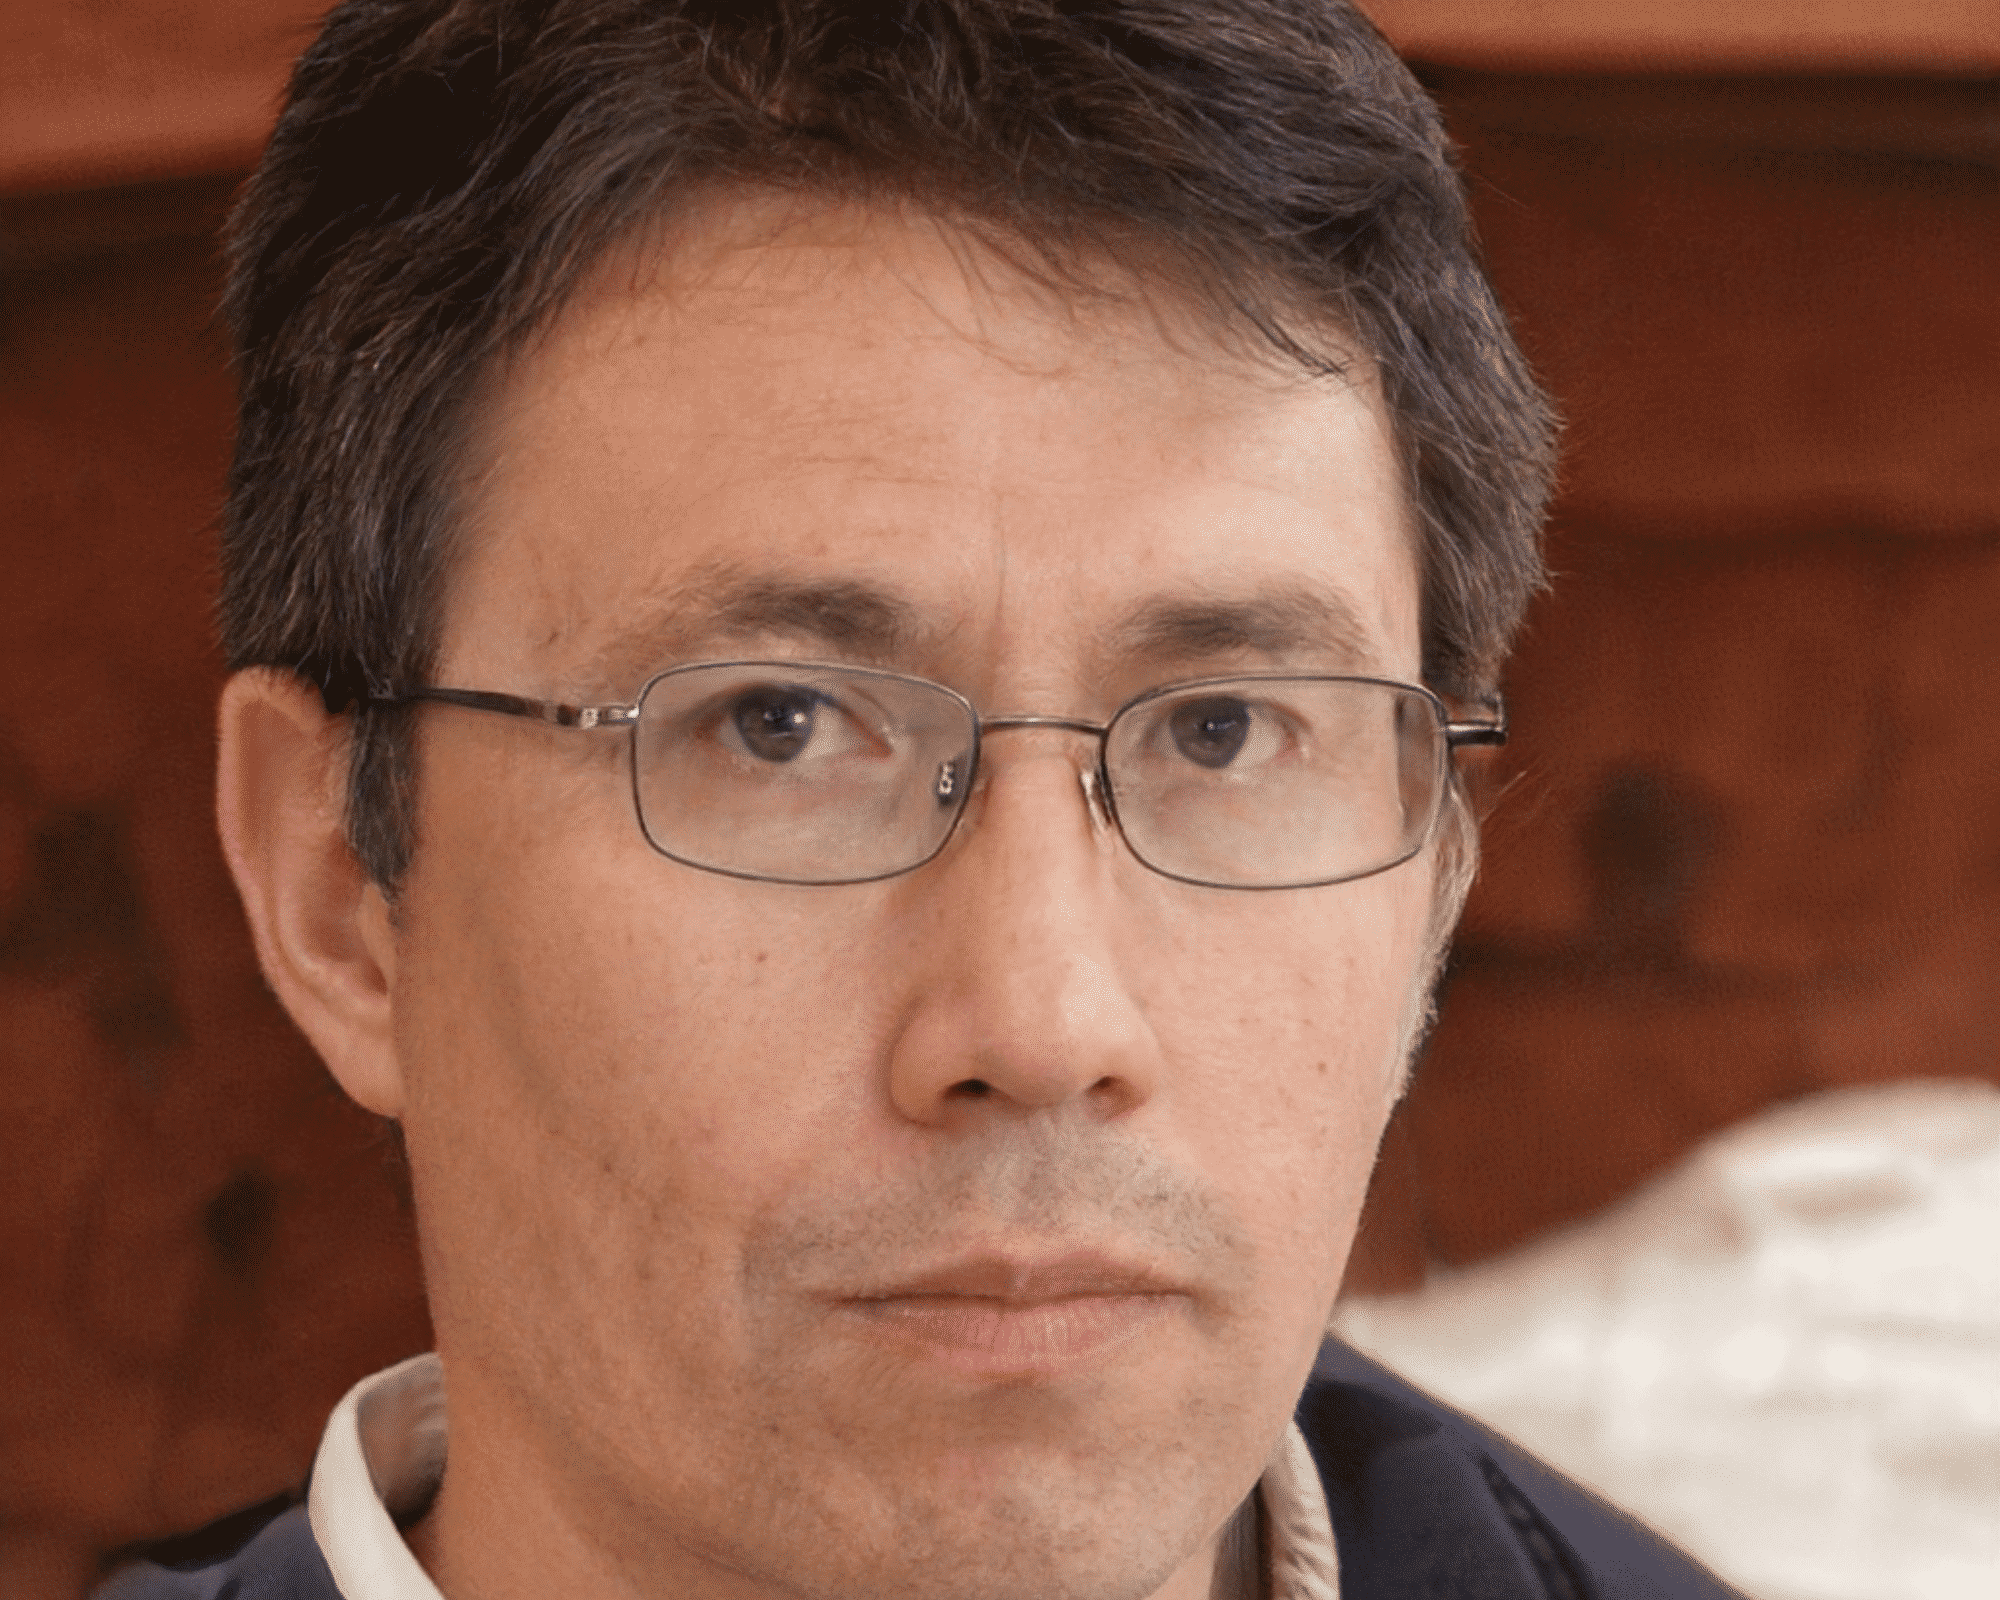 a man wearing glasses with brown hair